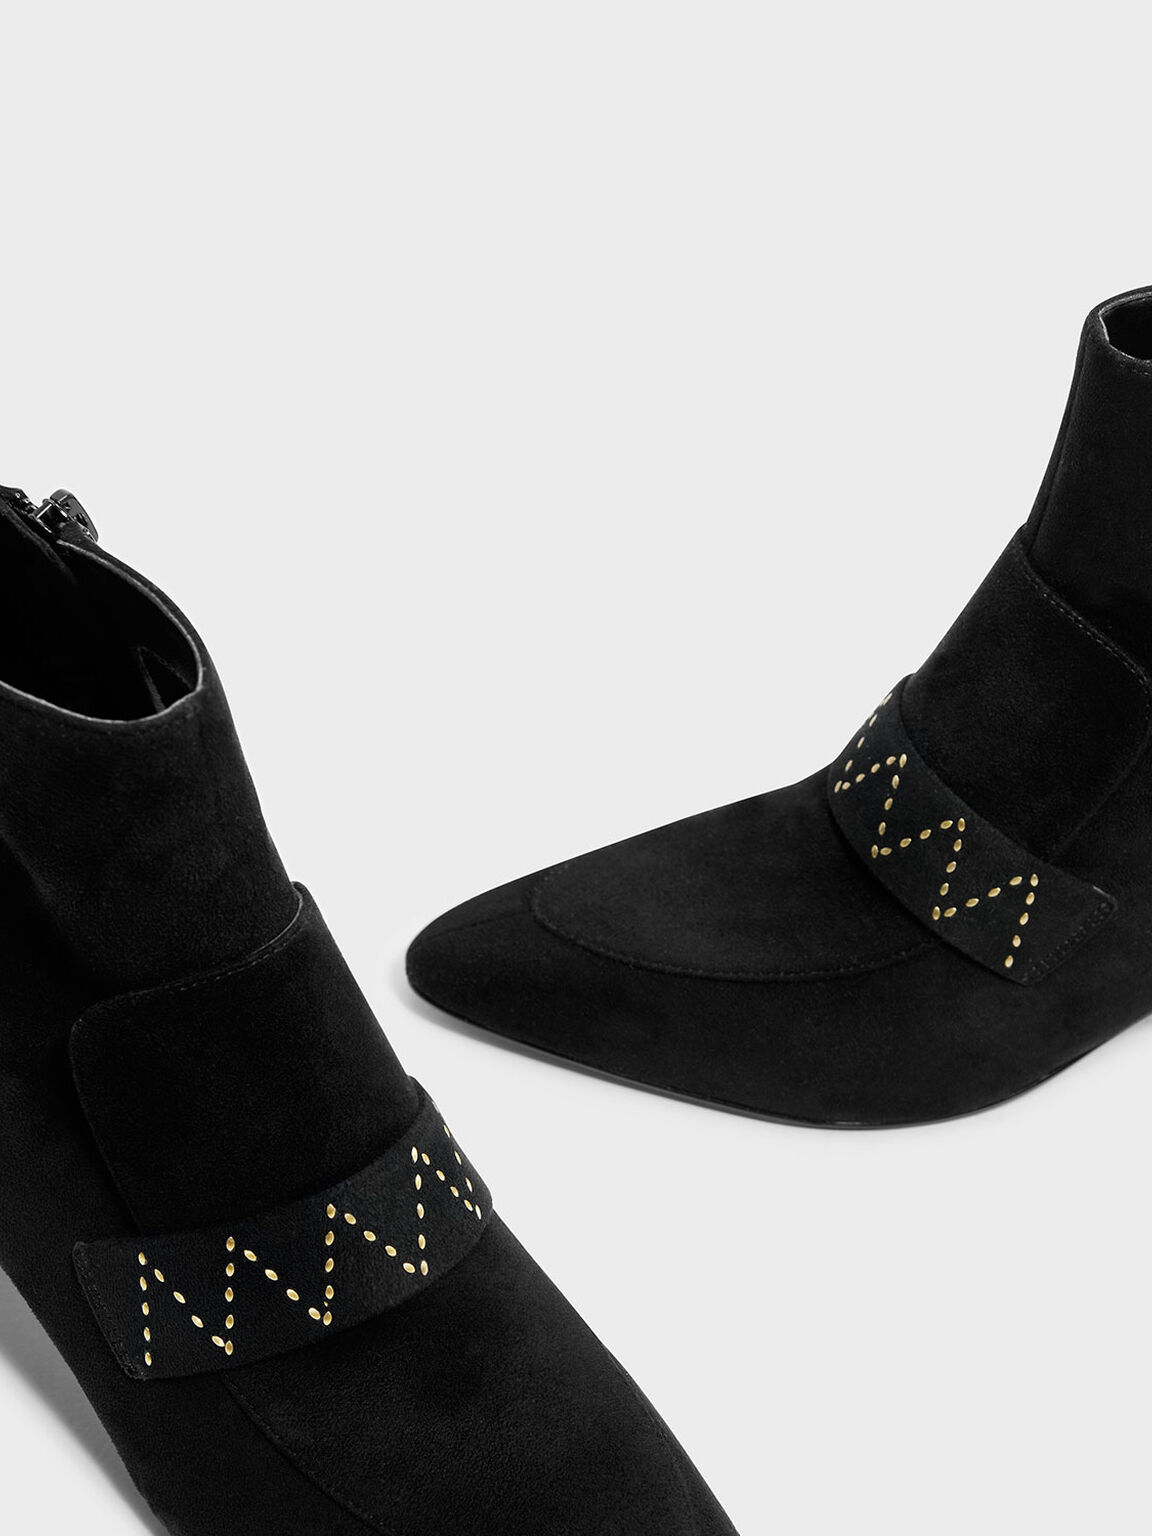 Topstitch Textured Ankle Boots, Black, hi-res